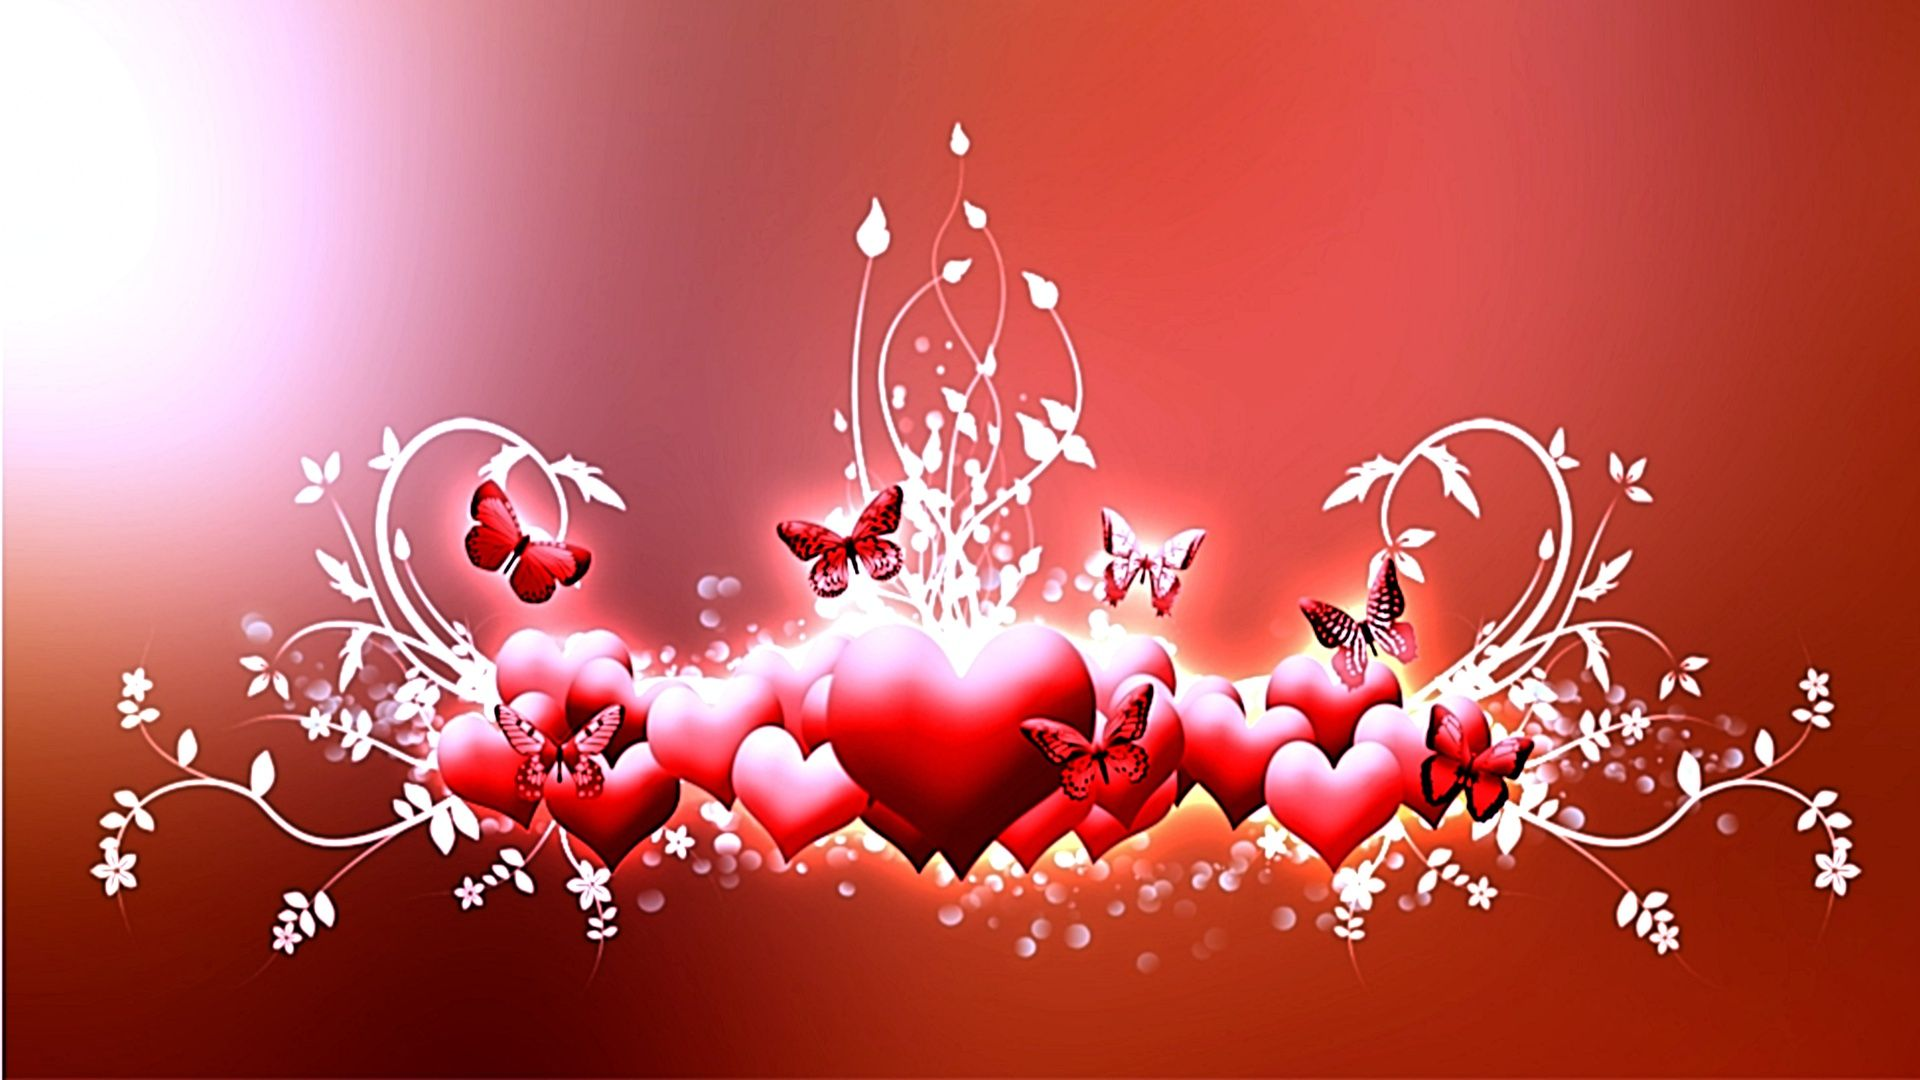 Screensavers For Mobile Phone Hearts Card About Love With